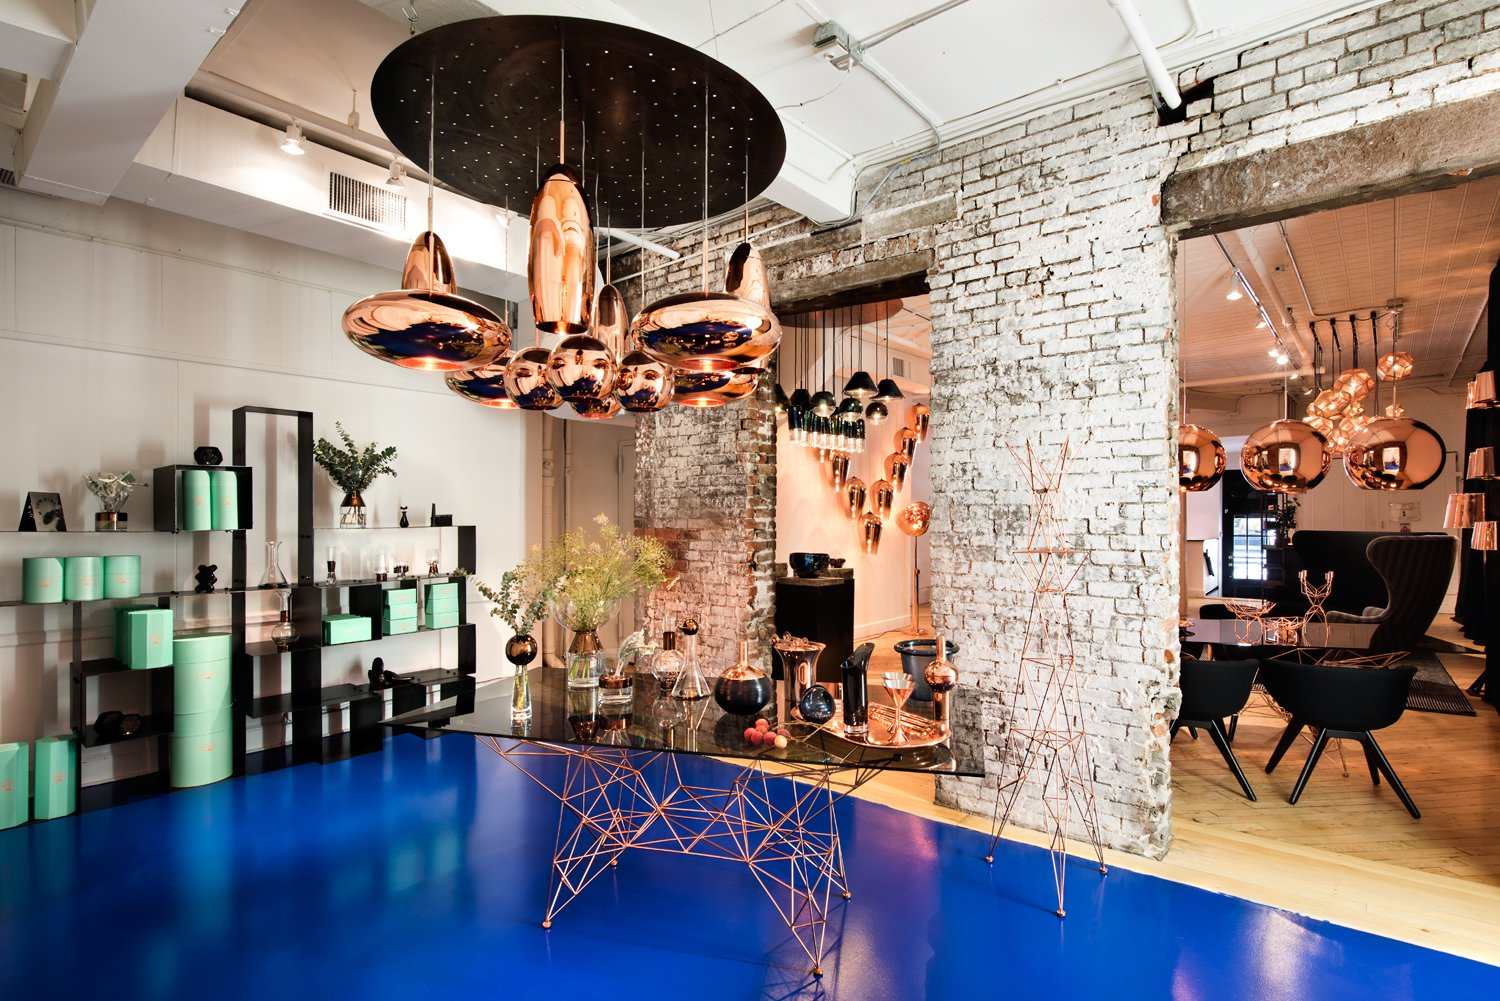 Tom Dixon's new Manhattan showroom at 19 Howard Street, featuring various pendants and tabletop items from the designer's Copper series, and the Pylons dining table, made from a copper-plated steel rod base and smoked glass surface.